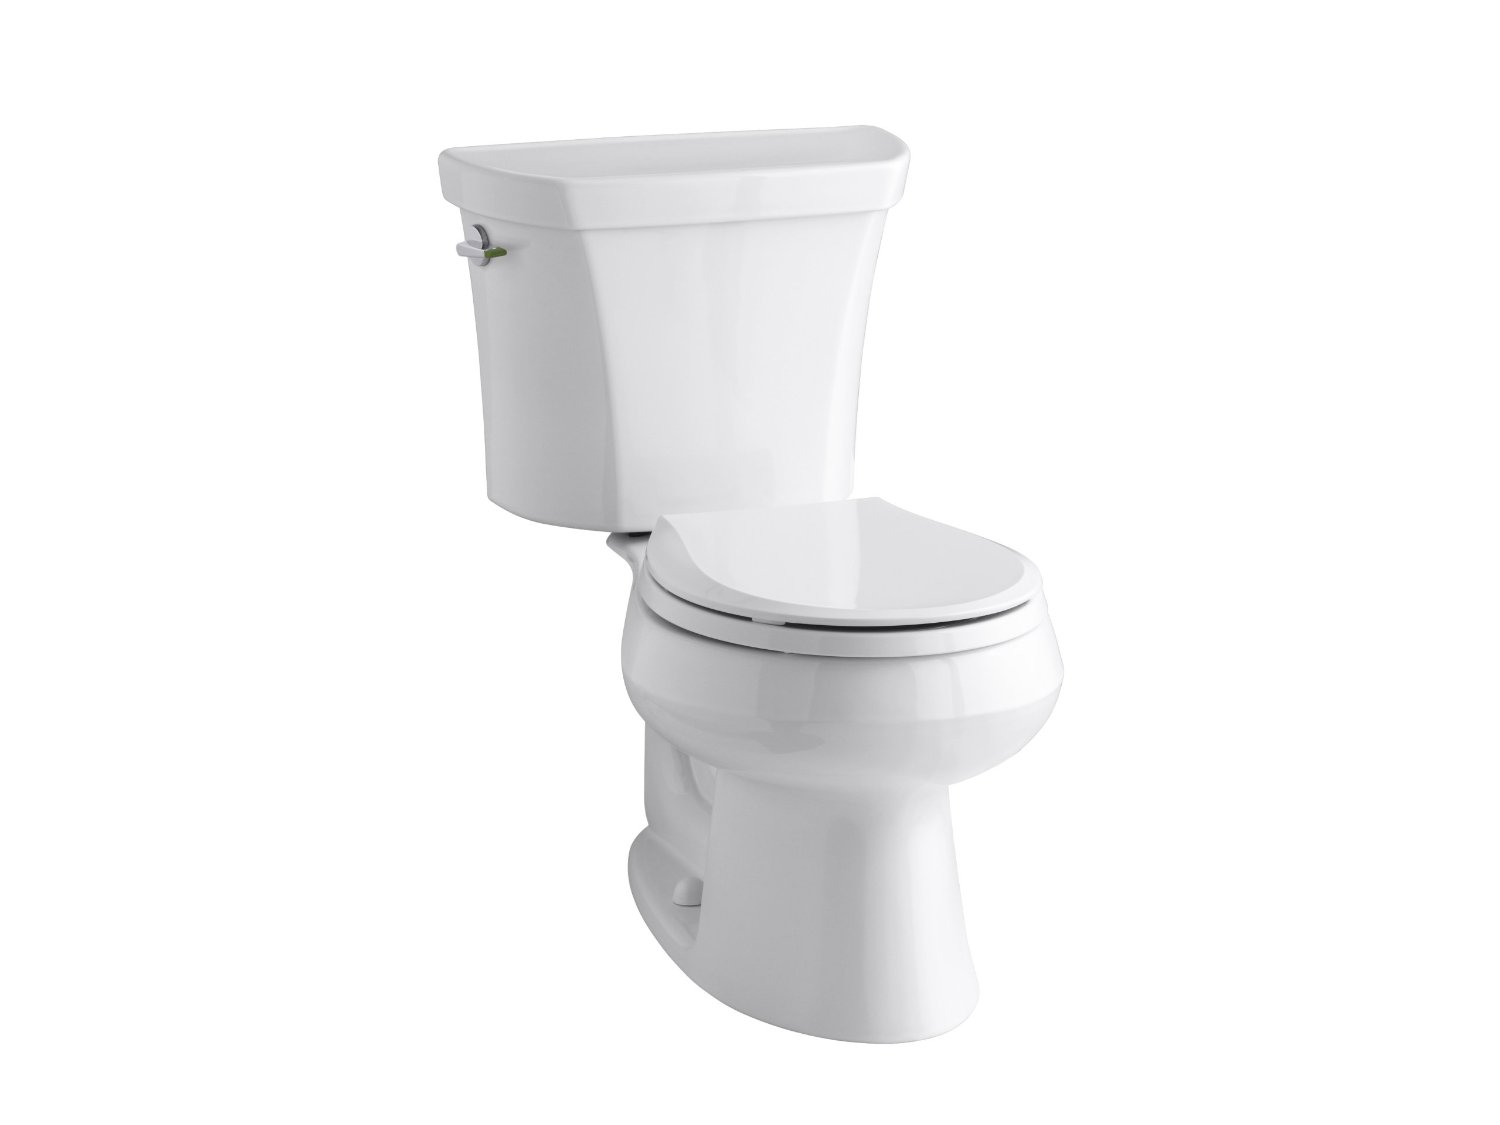 Super Kohler Wellworth Toilet Review Toilet Review Guide Unemploymentrelief Wooden Chair Designs For Living Room Unemploymentrelieforg